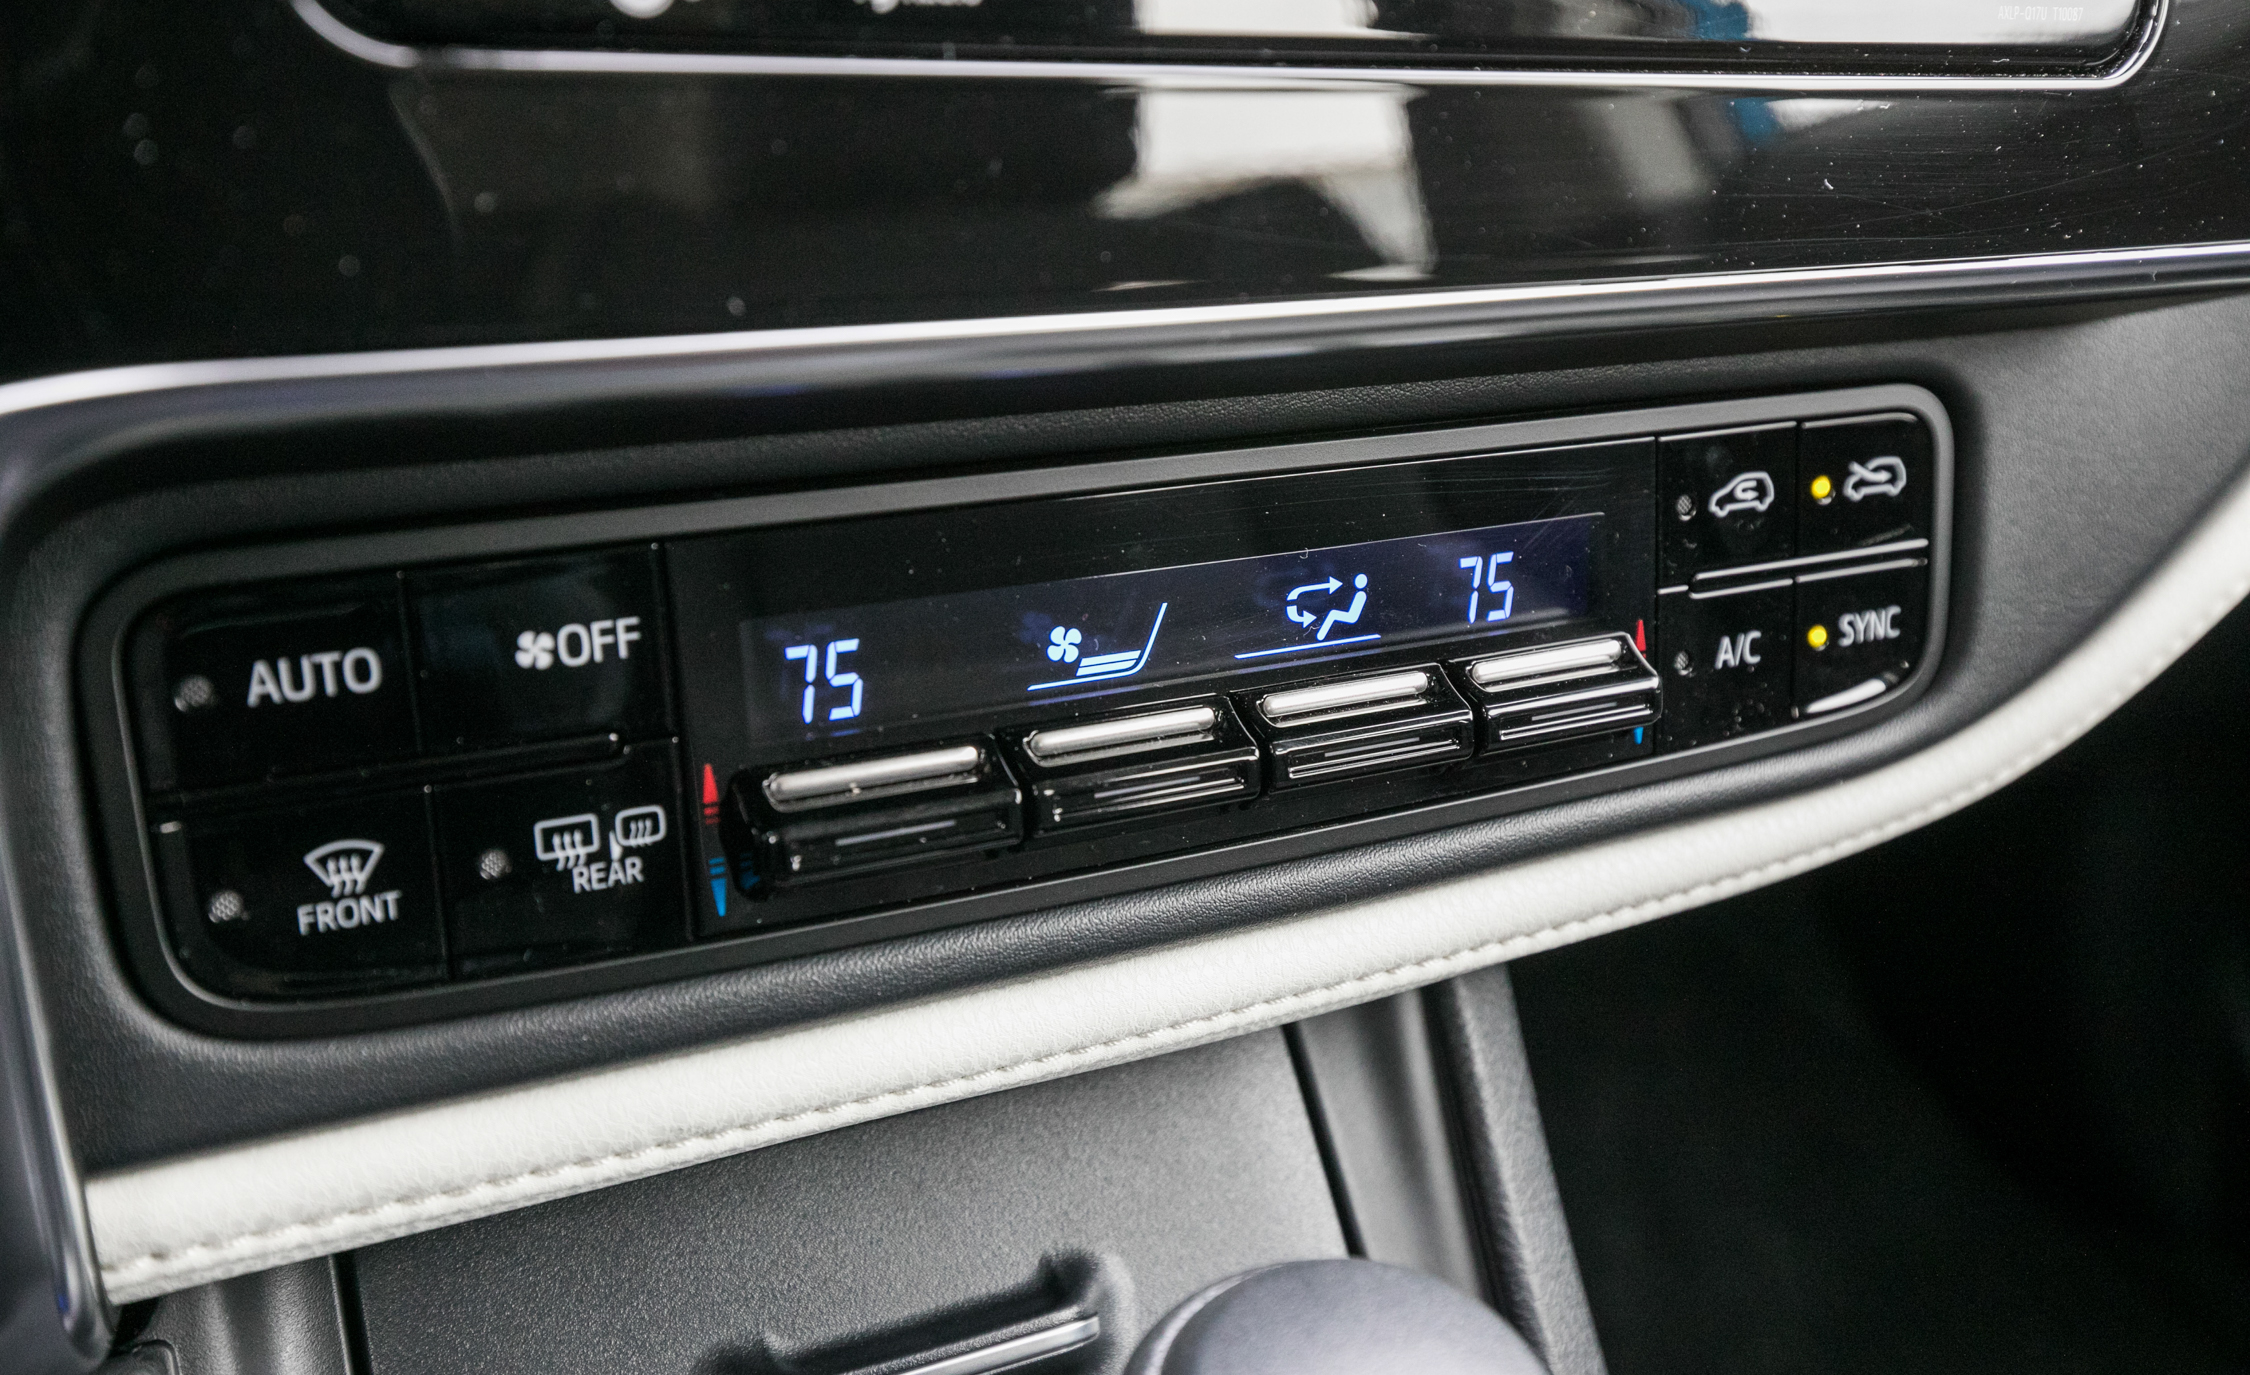 2017 Toyota Corolla IM Hatchback Interior View Climate Control (Photo 39 of 52)